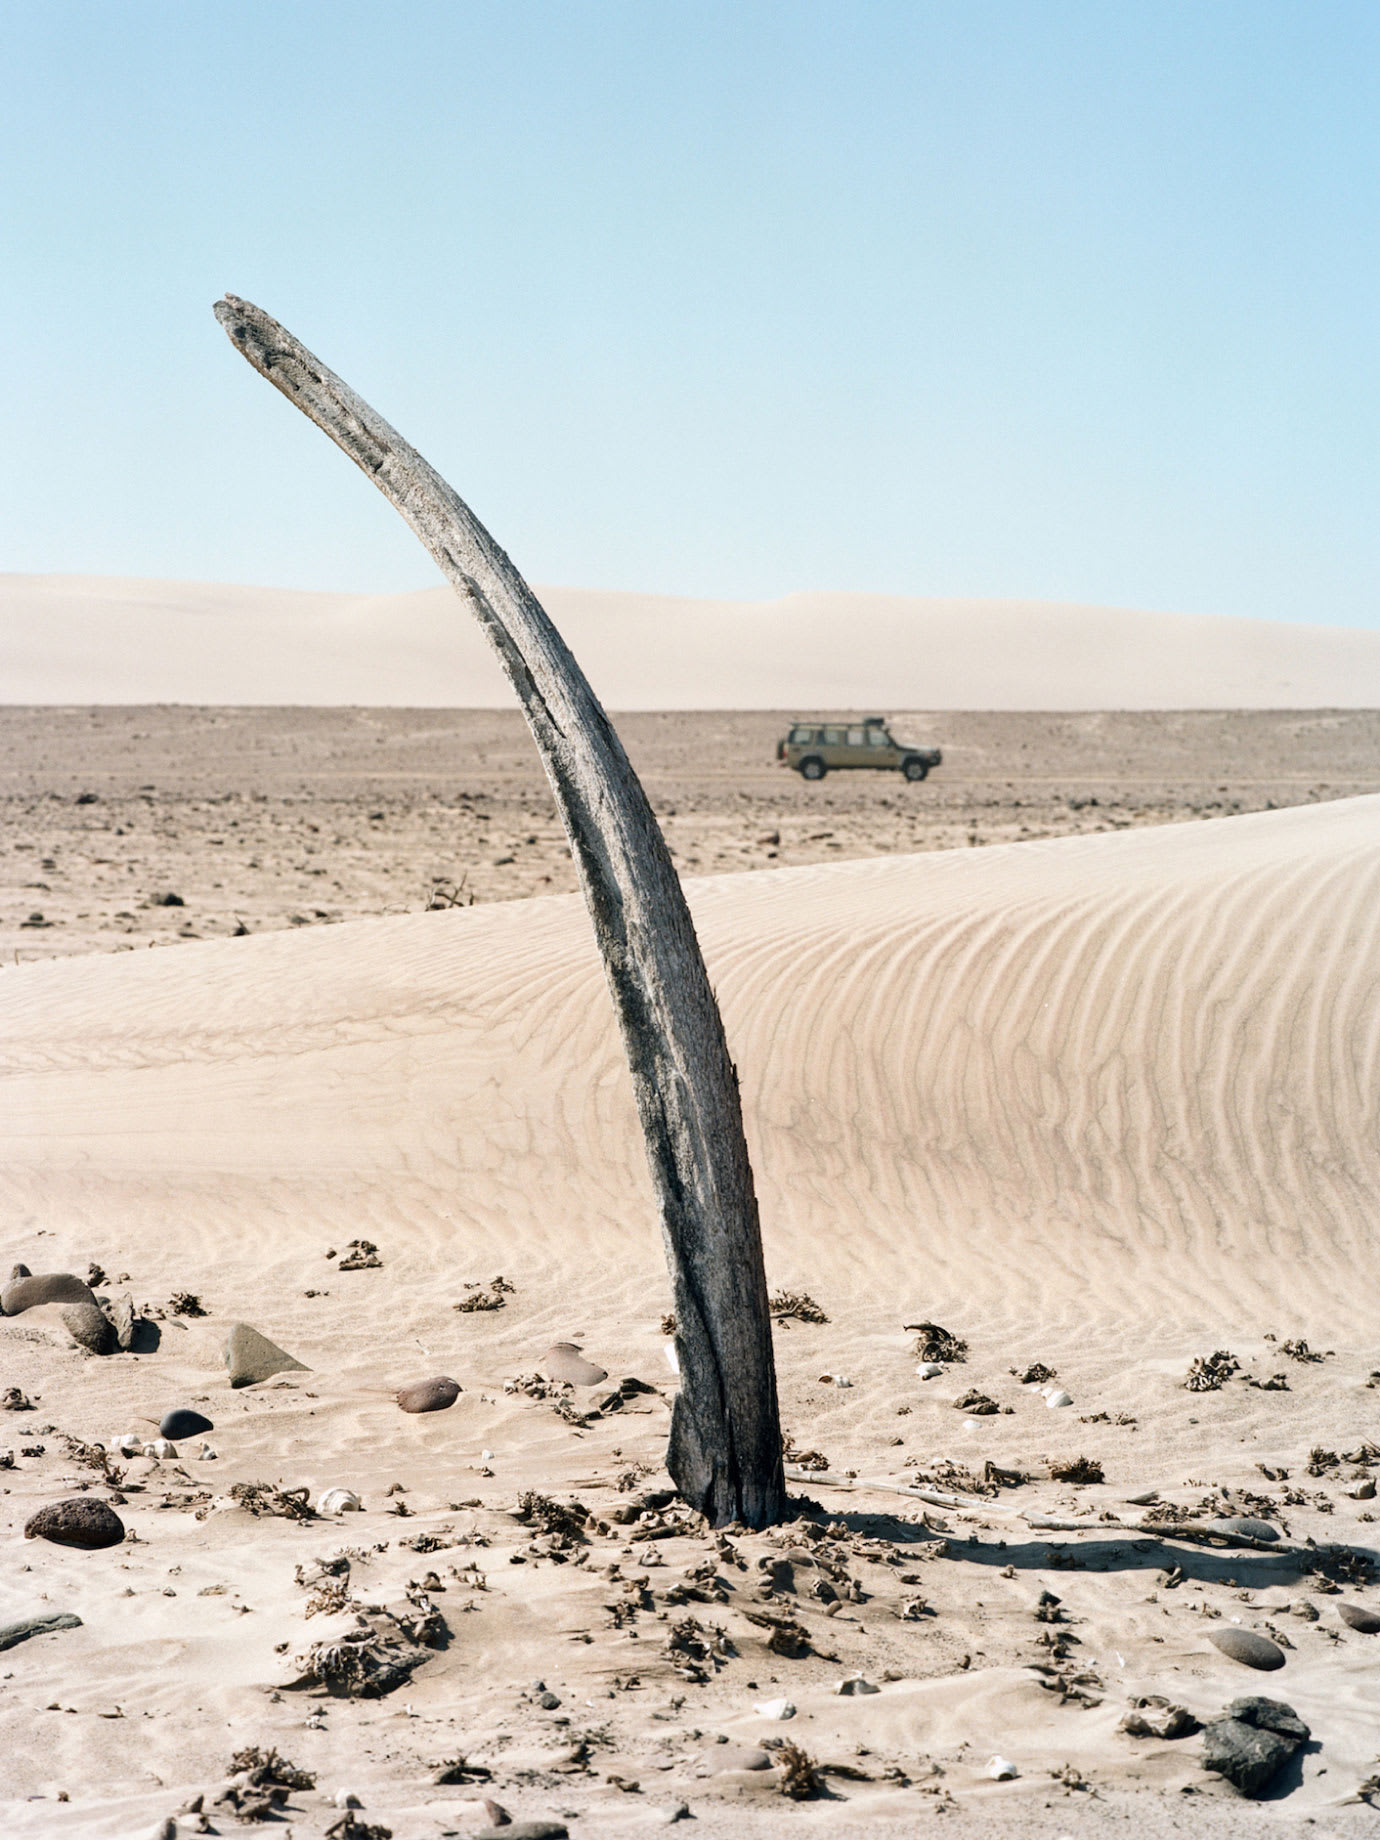 A weathered whale bone sticking out of the ground in a desert with a jeep driving in the distance behind it.